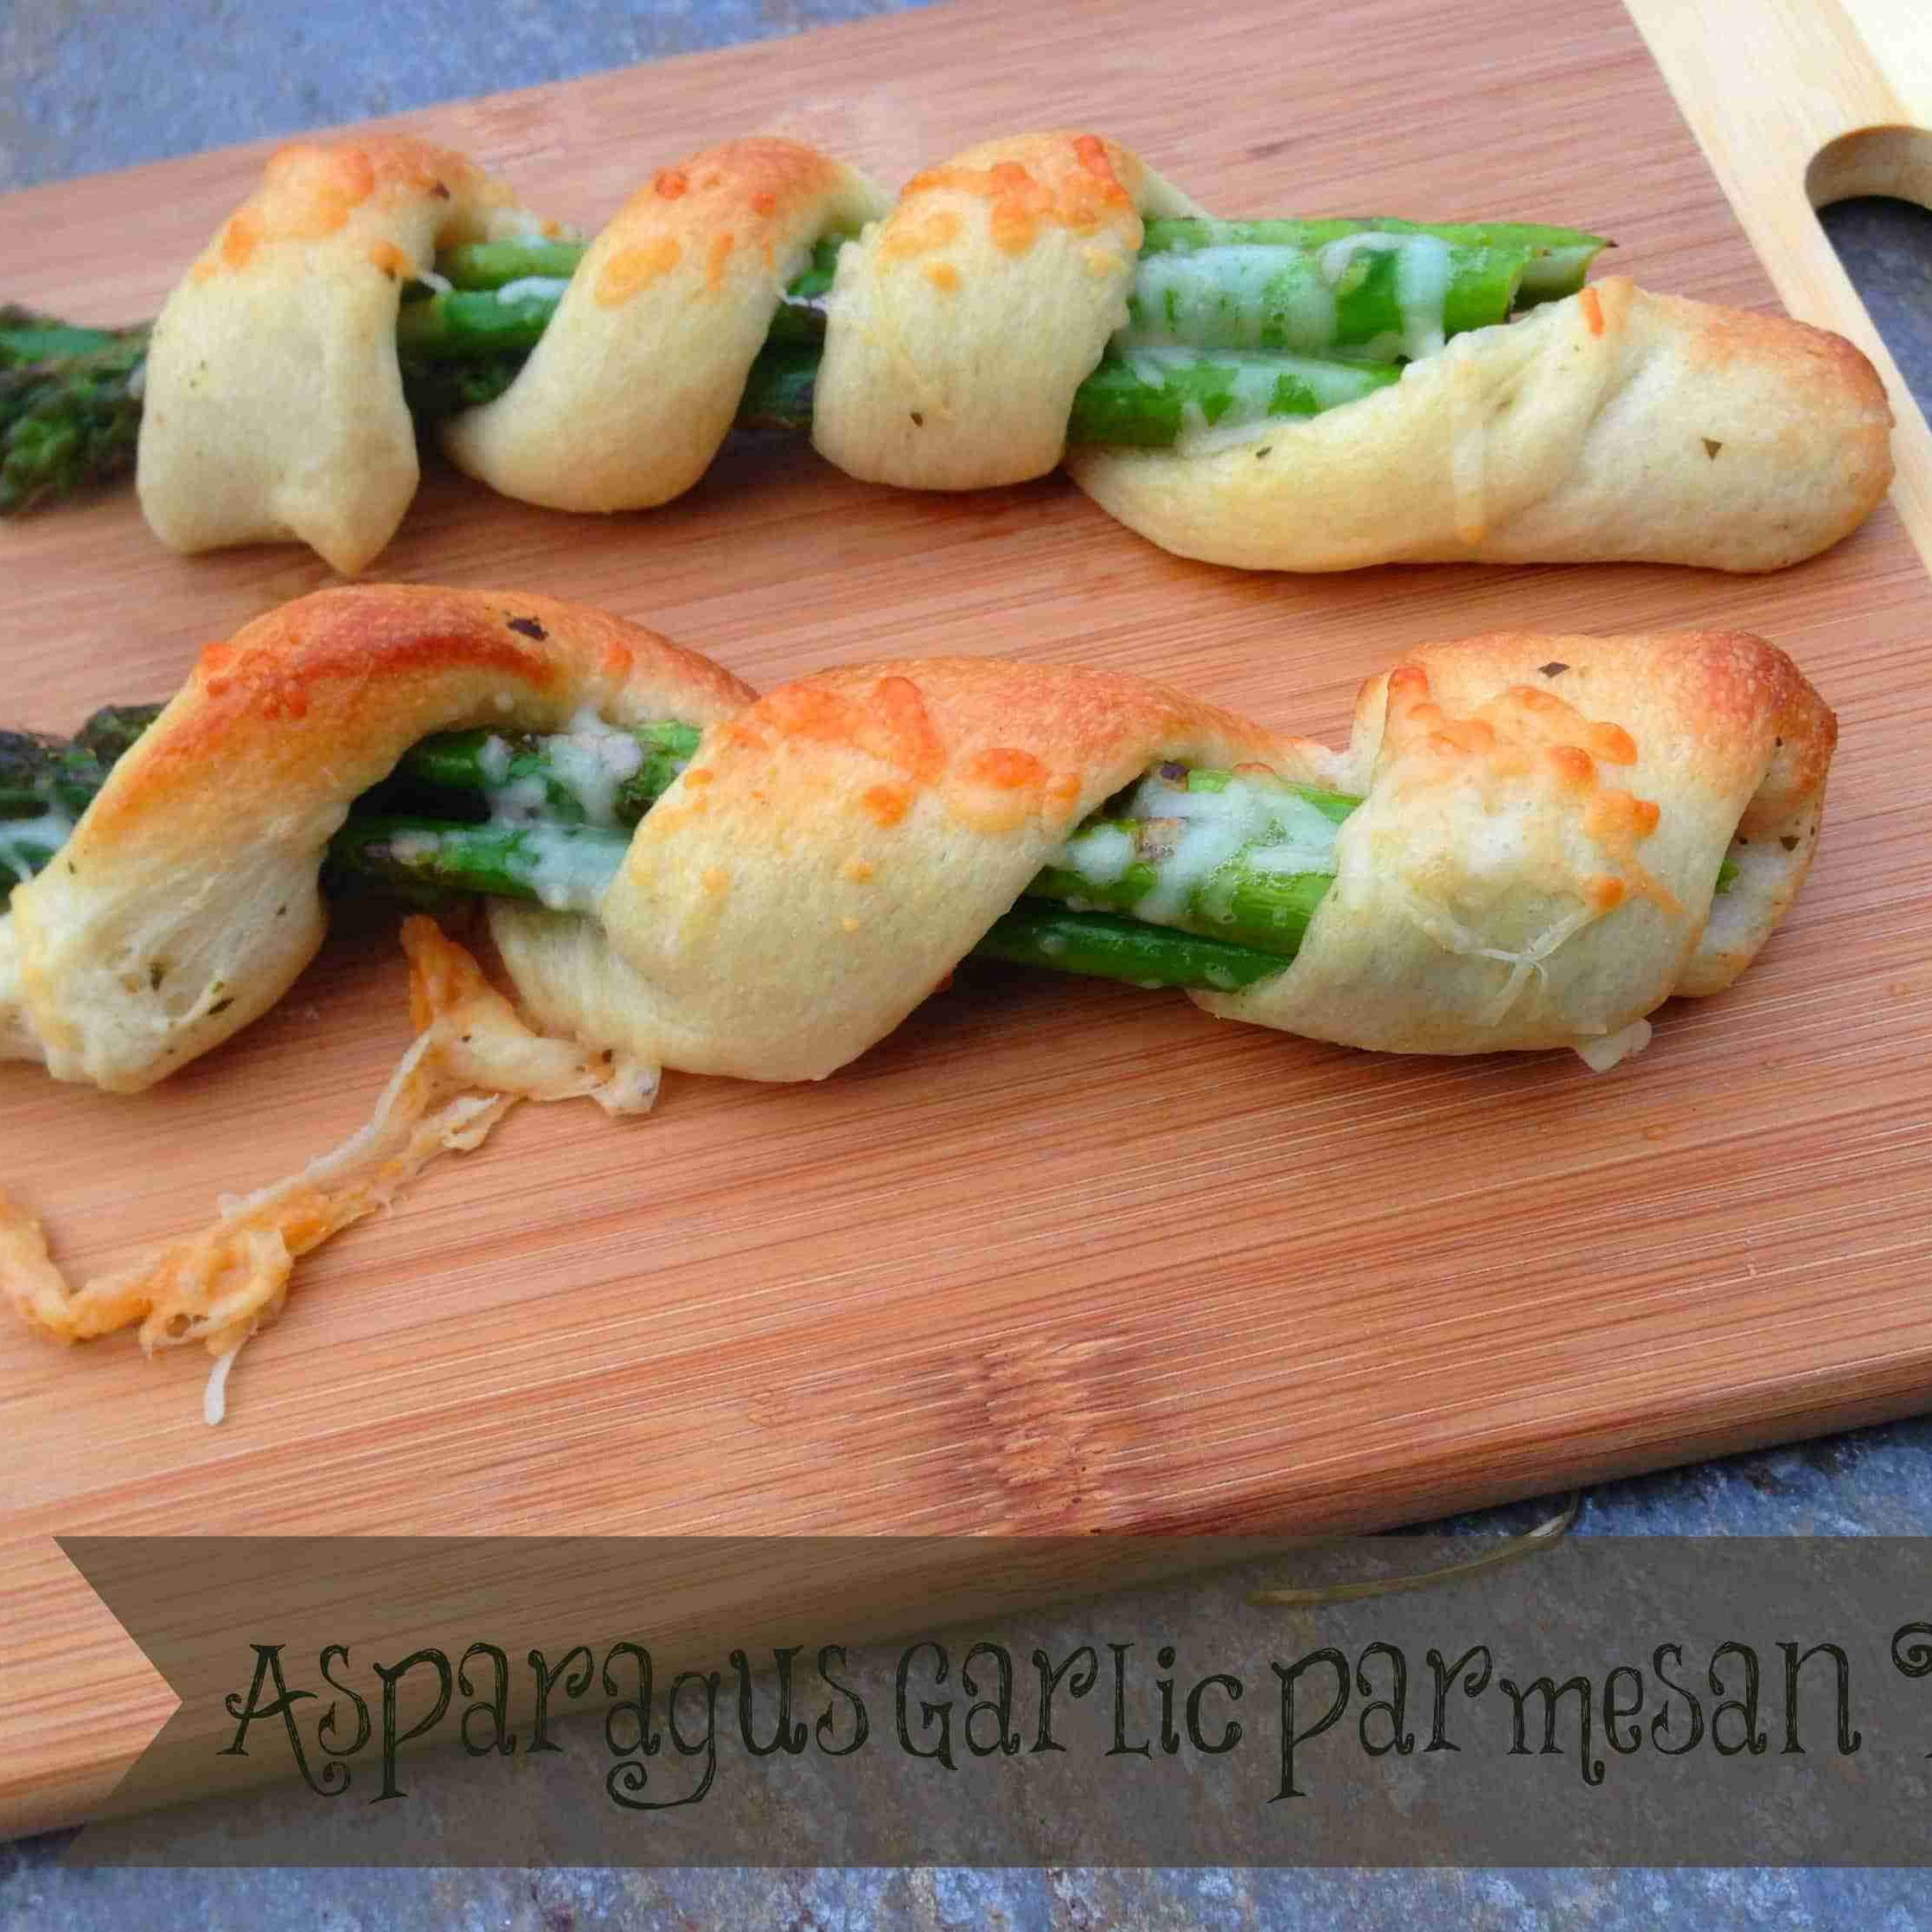 Asparagus Garlic Parmesan Twists